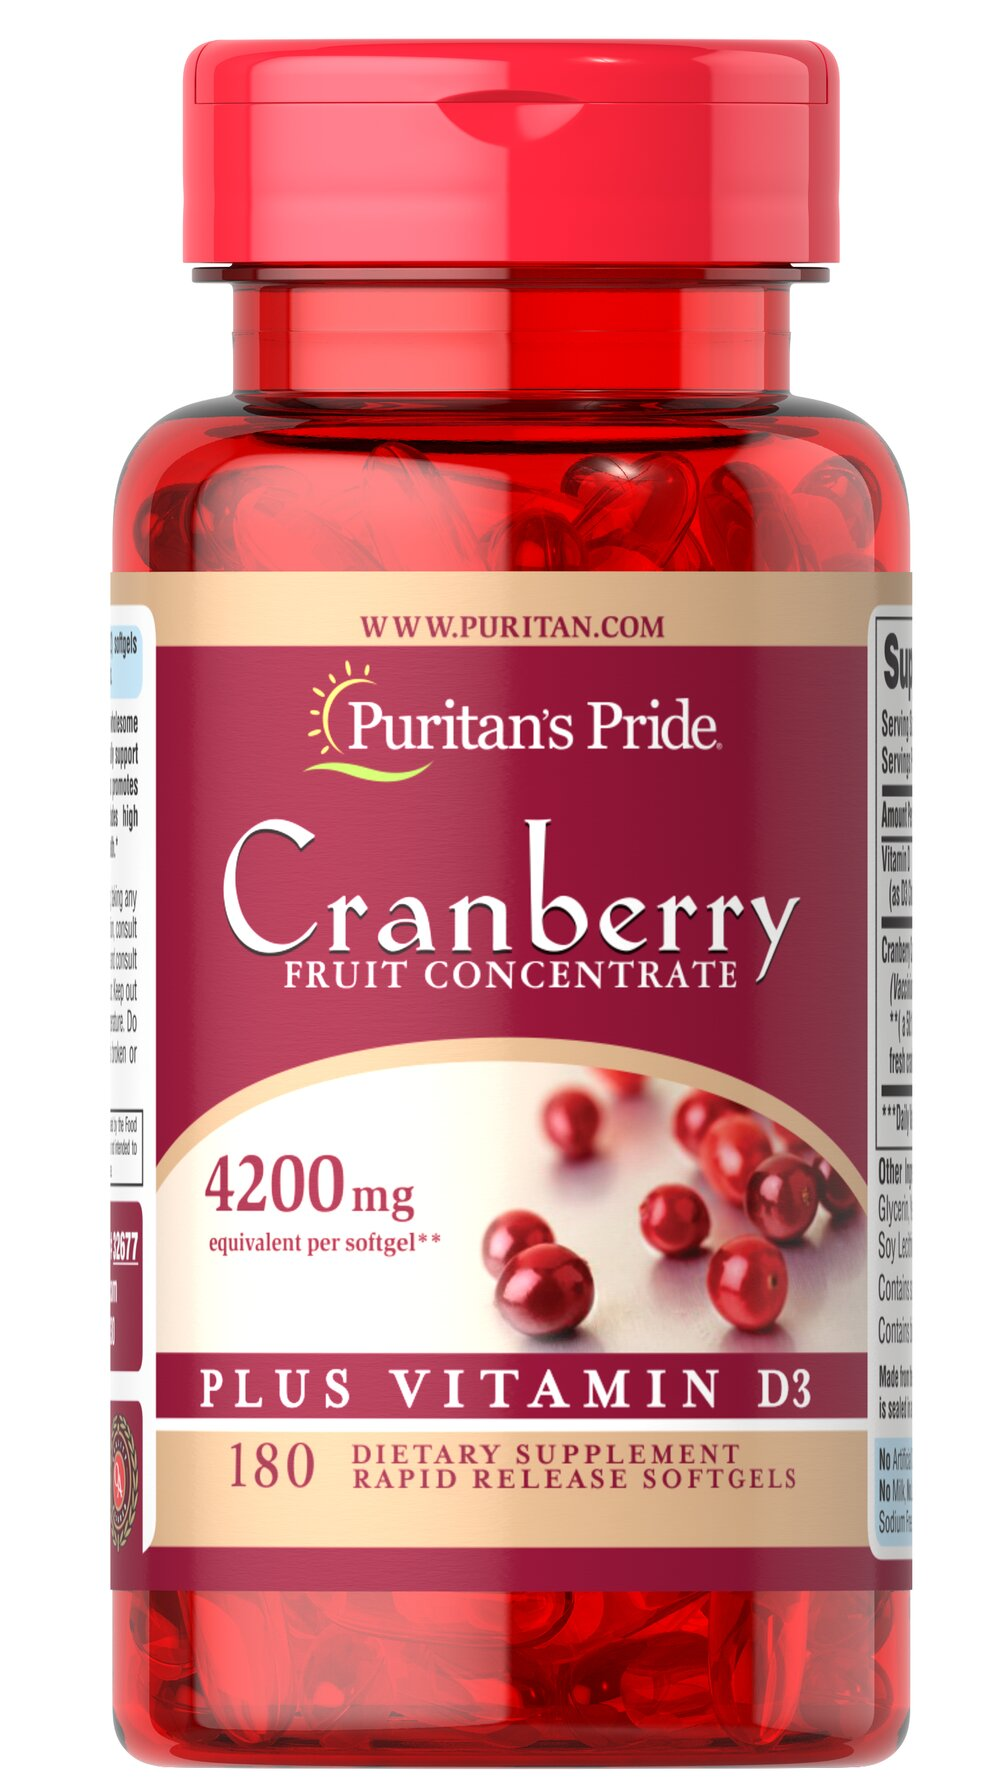 Cranberry Fruit Concentrate Plus Vitamin D3 <p>Our Cranberry Fruit Concentrate Plus Vitamin D3 has the wholesome goodness of cranberries to nutritionally support urinary tract health as well as promote bladder health.** Each serving contains a 50:1 concentrate, the equivalent of 8,400 mg of fresh cranberries. Also includes 1000 IUs of high potency Vitamin D3 per serving to support bone and breast health.** Includes 180 rapid release softgels.</p> <p>• Has the wholesome goodness